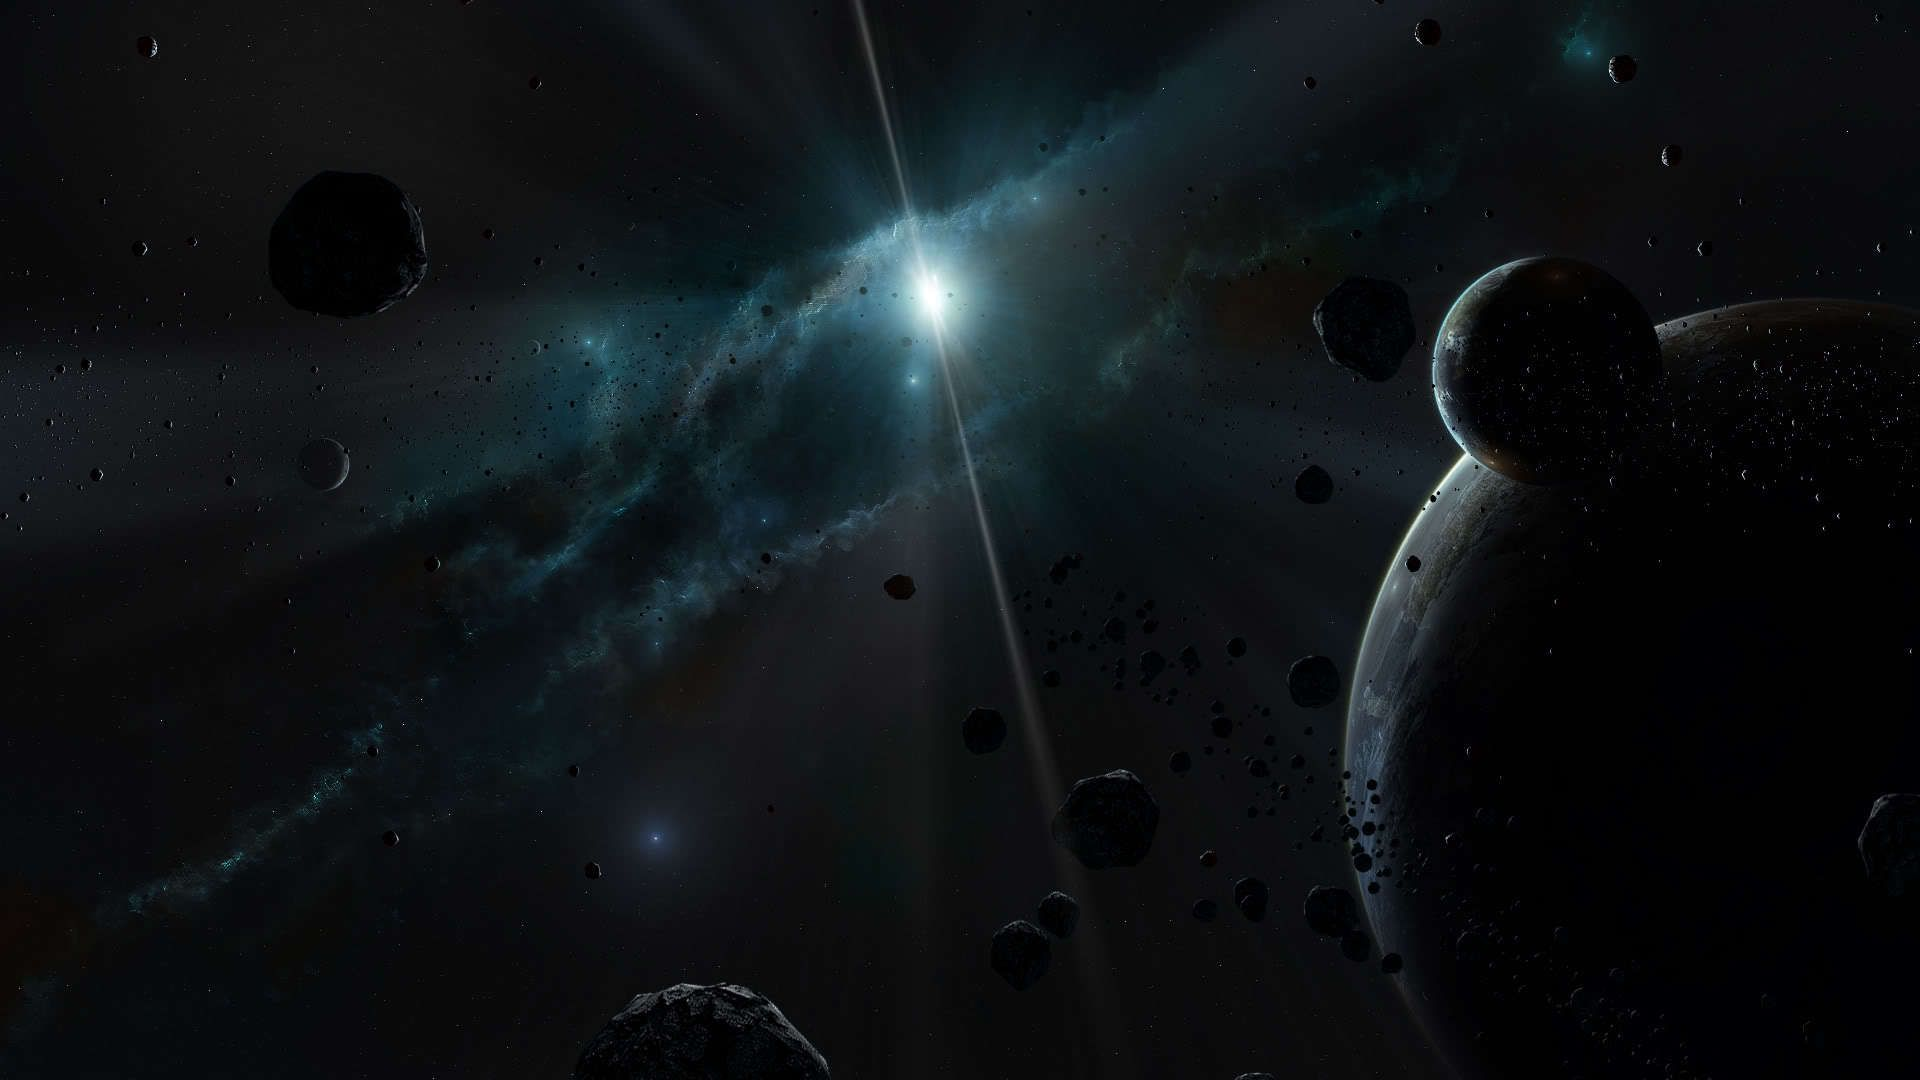 Deep Space Wallpaper 1920x1080   Viewing Gallery 1920x1080